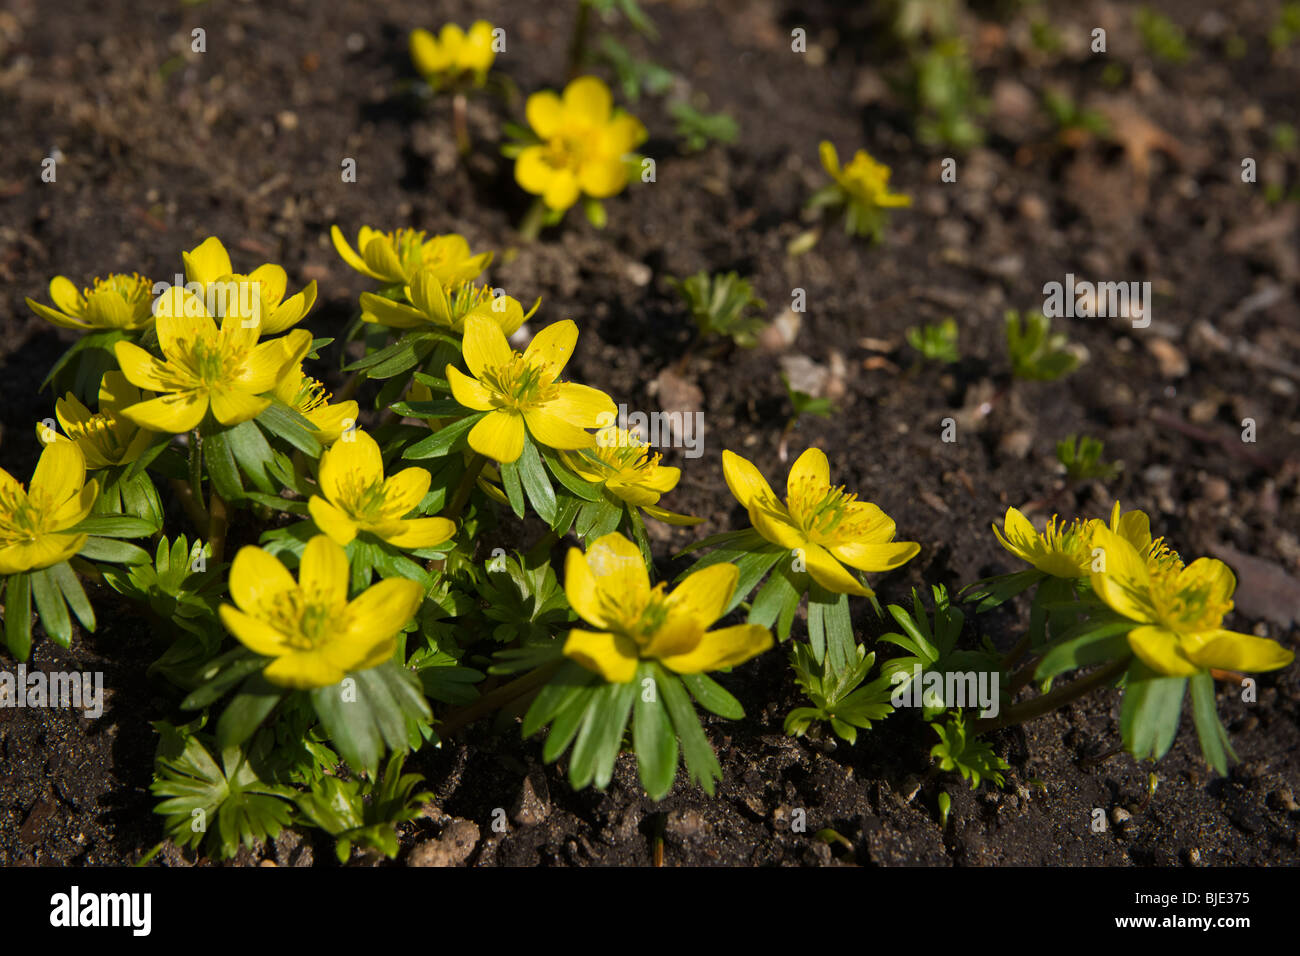 Blooming Yellow Winter Aconite Eranthis Hyemalis Flowers In Early